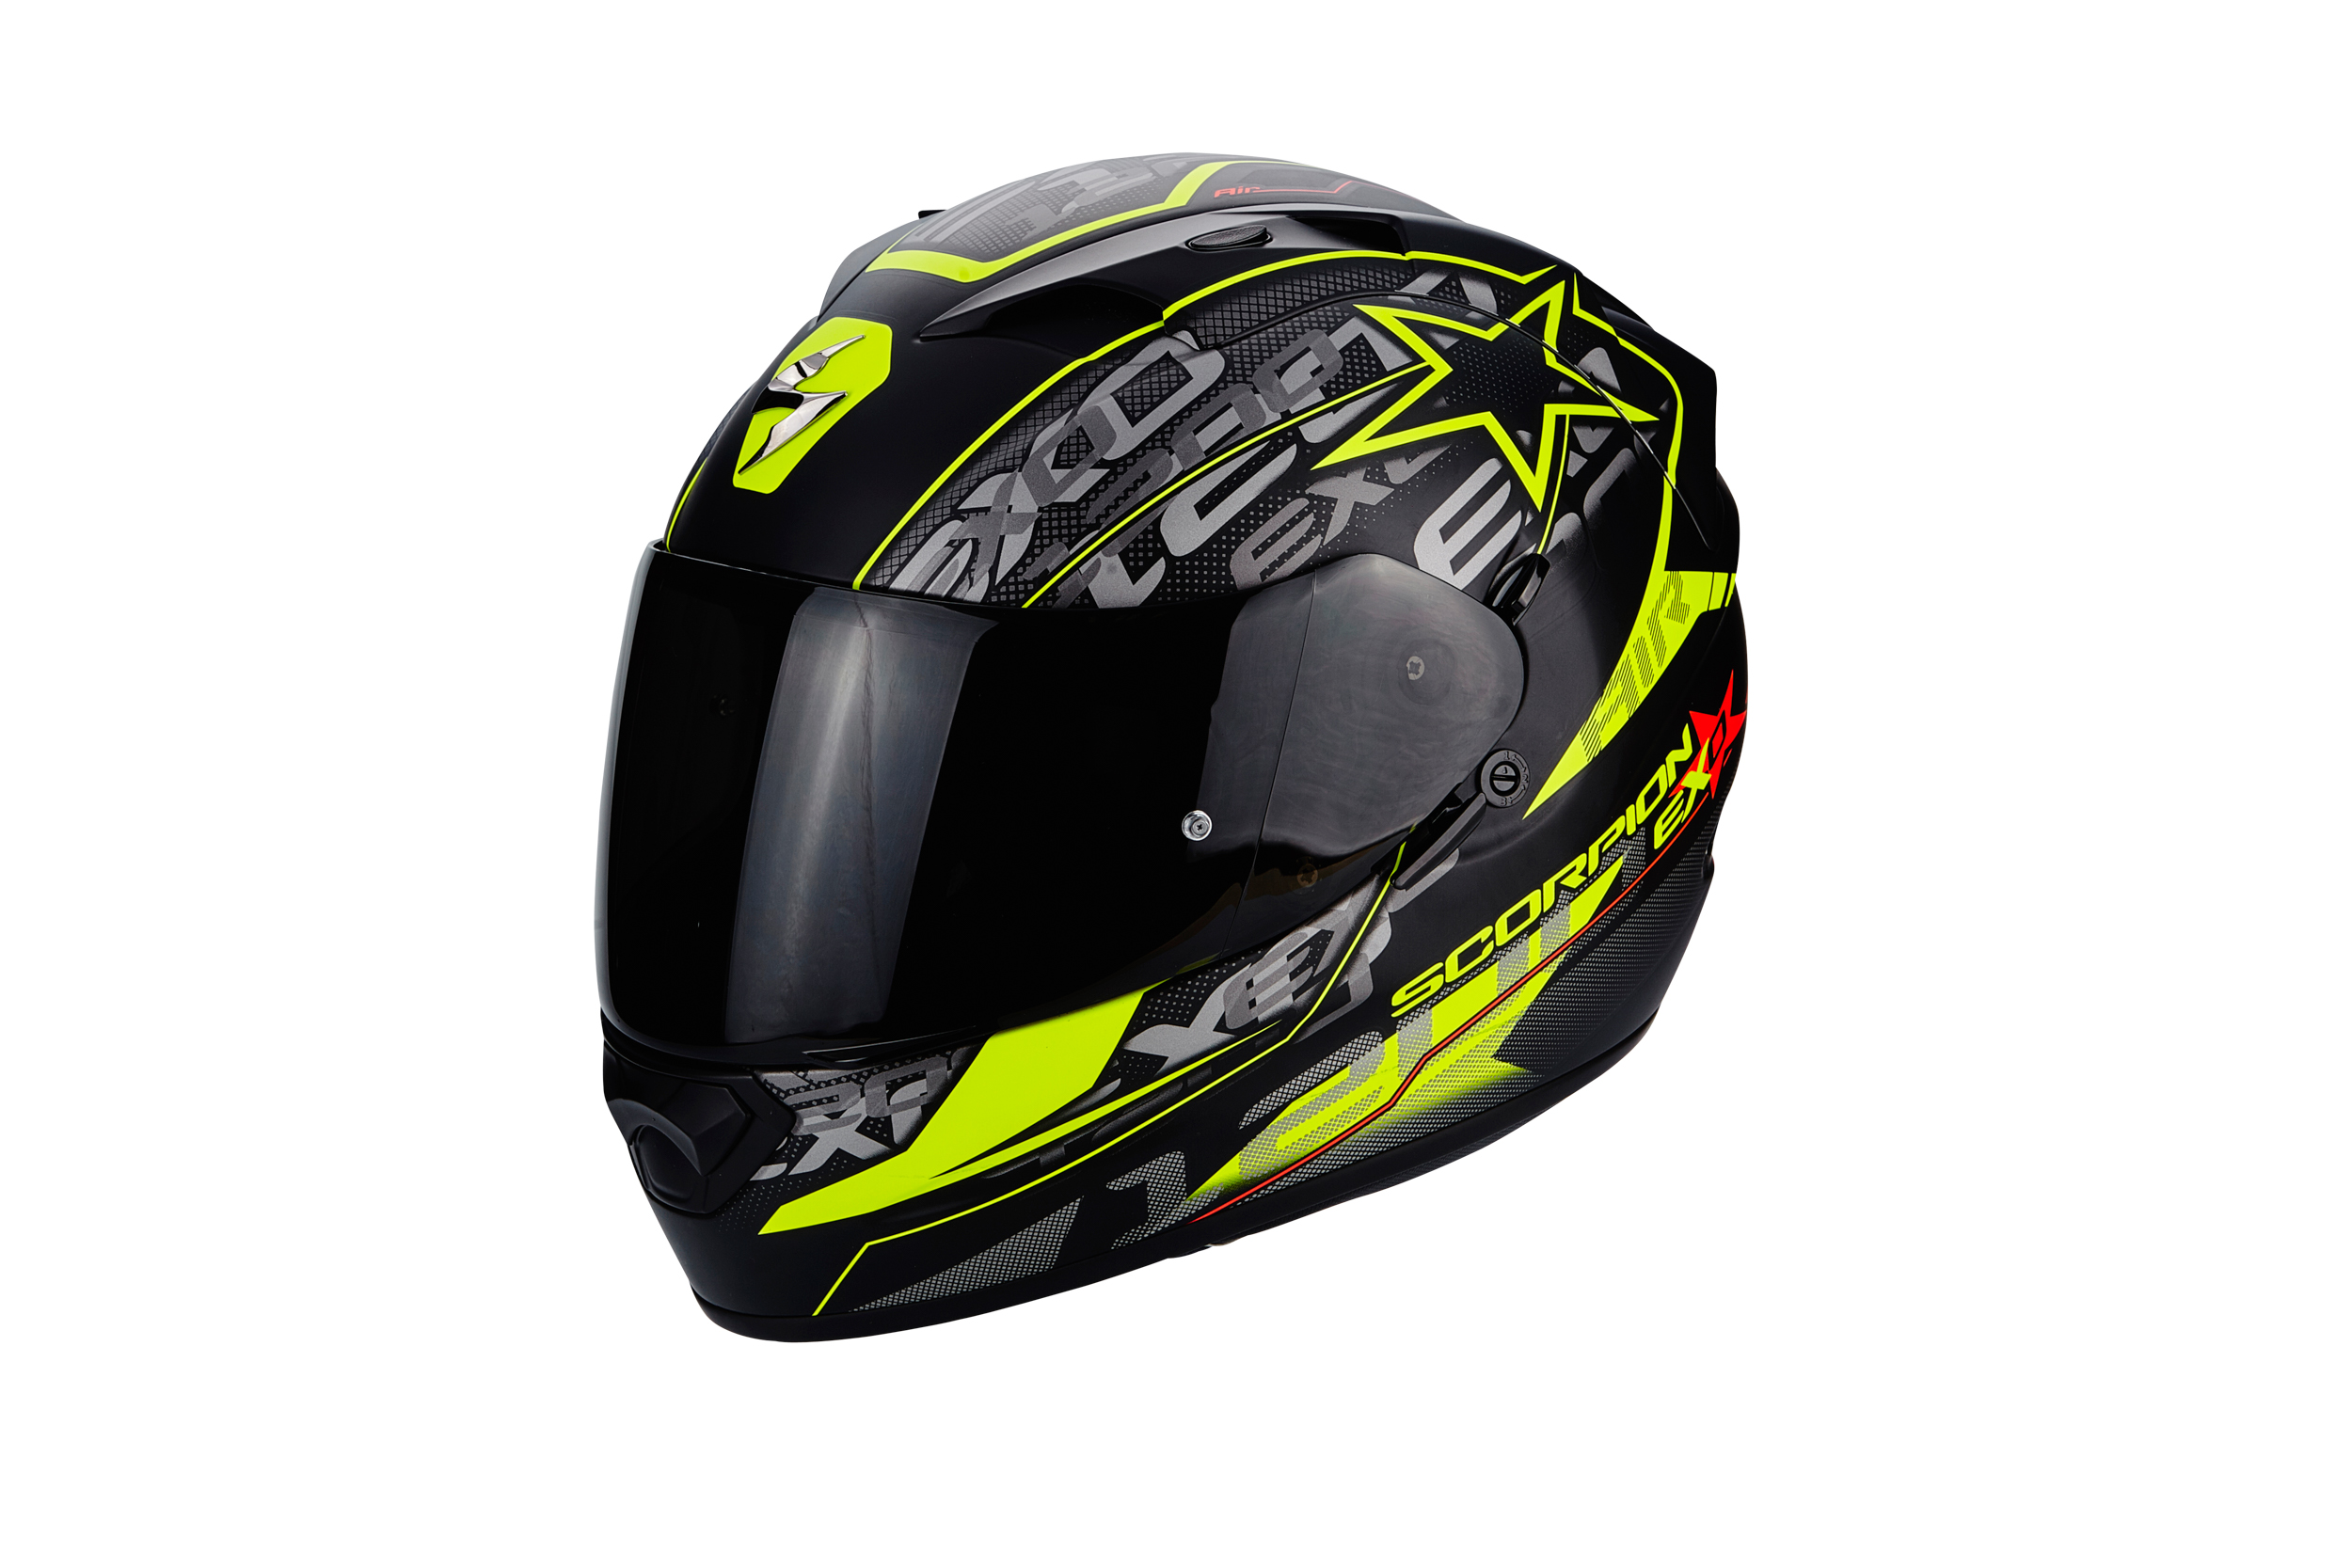 casque scorpion exo 1200 air solis s team motos. Black Bedroom Furniture Sets. Home Design Ideas